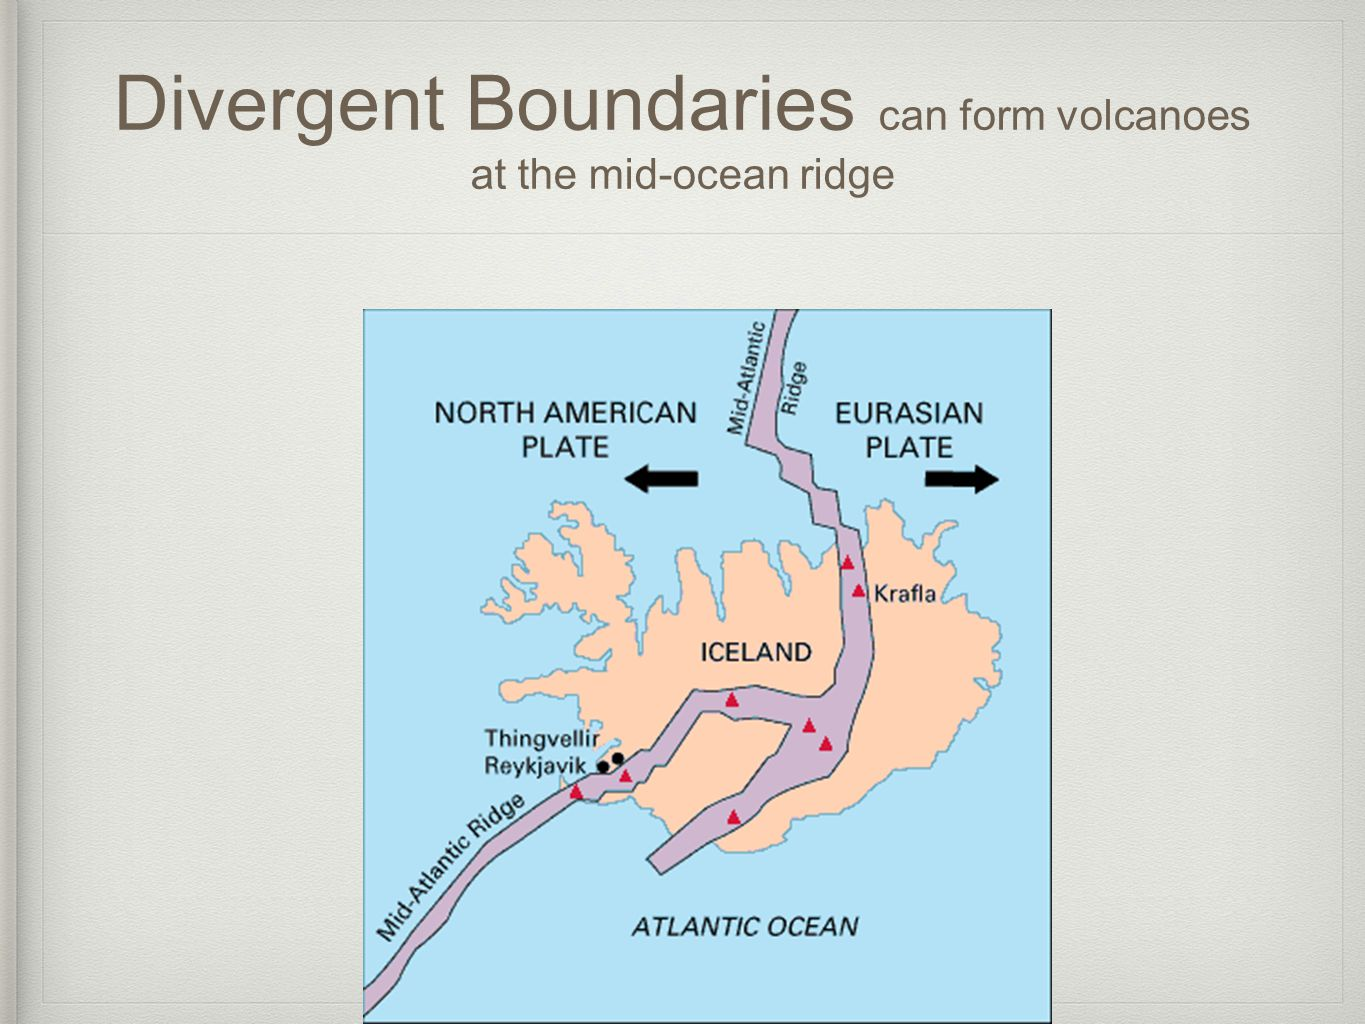 Divergent Boundaries can form volcanoes at the mid-ocean ridge